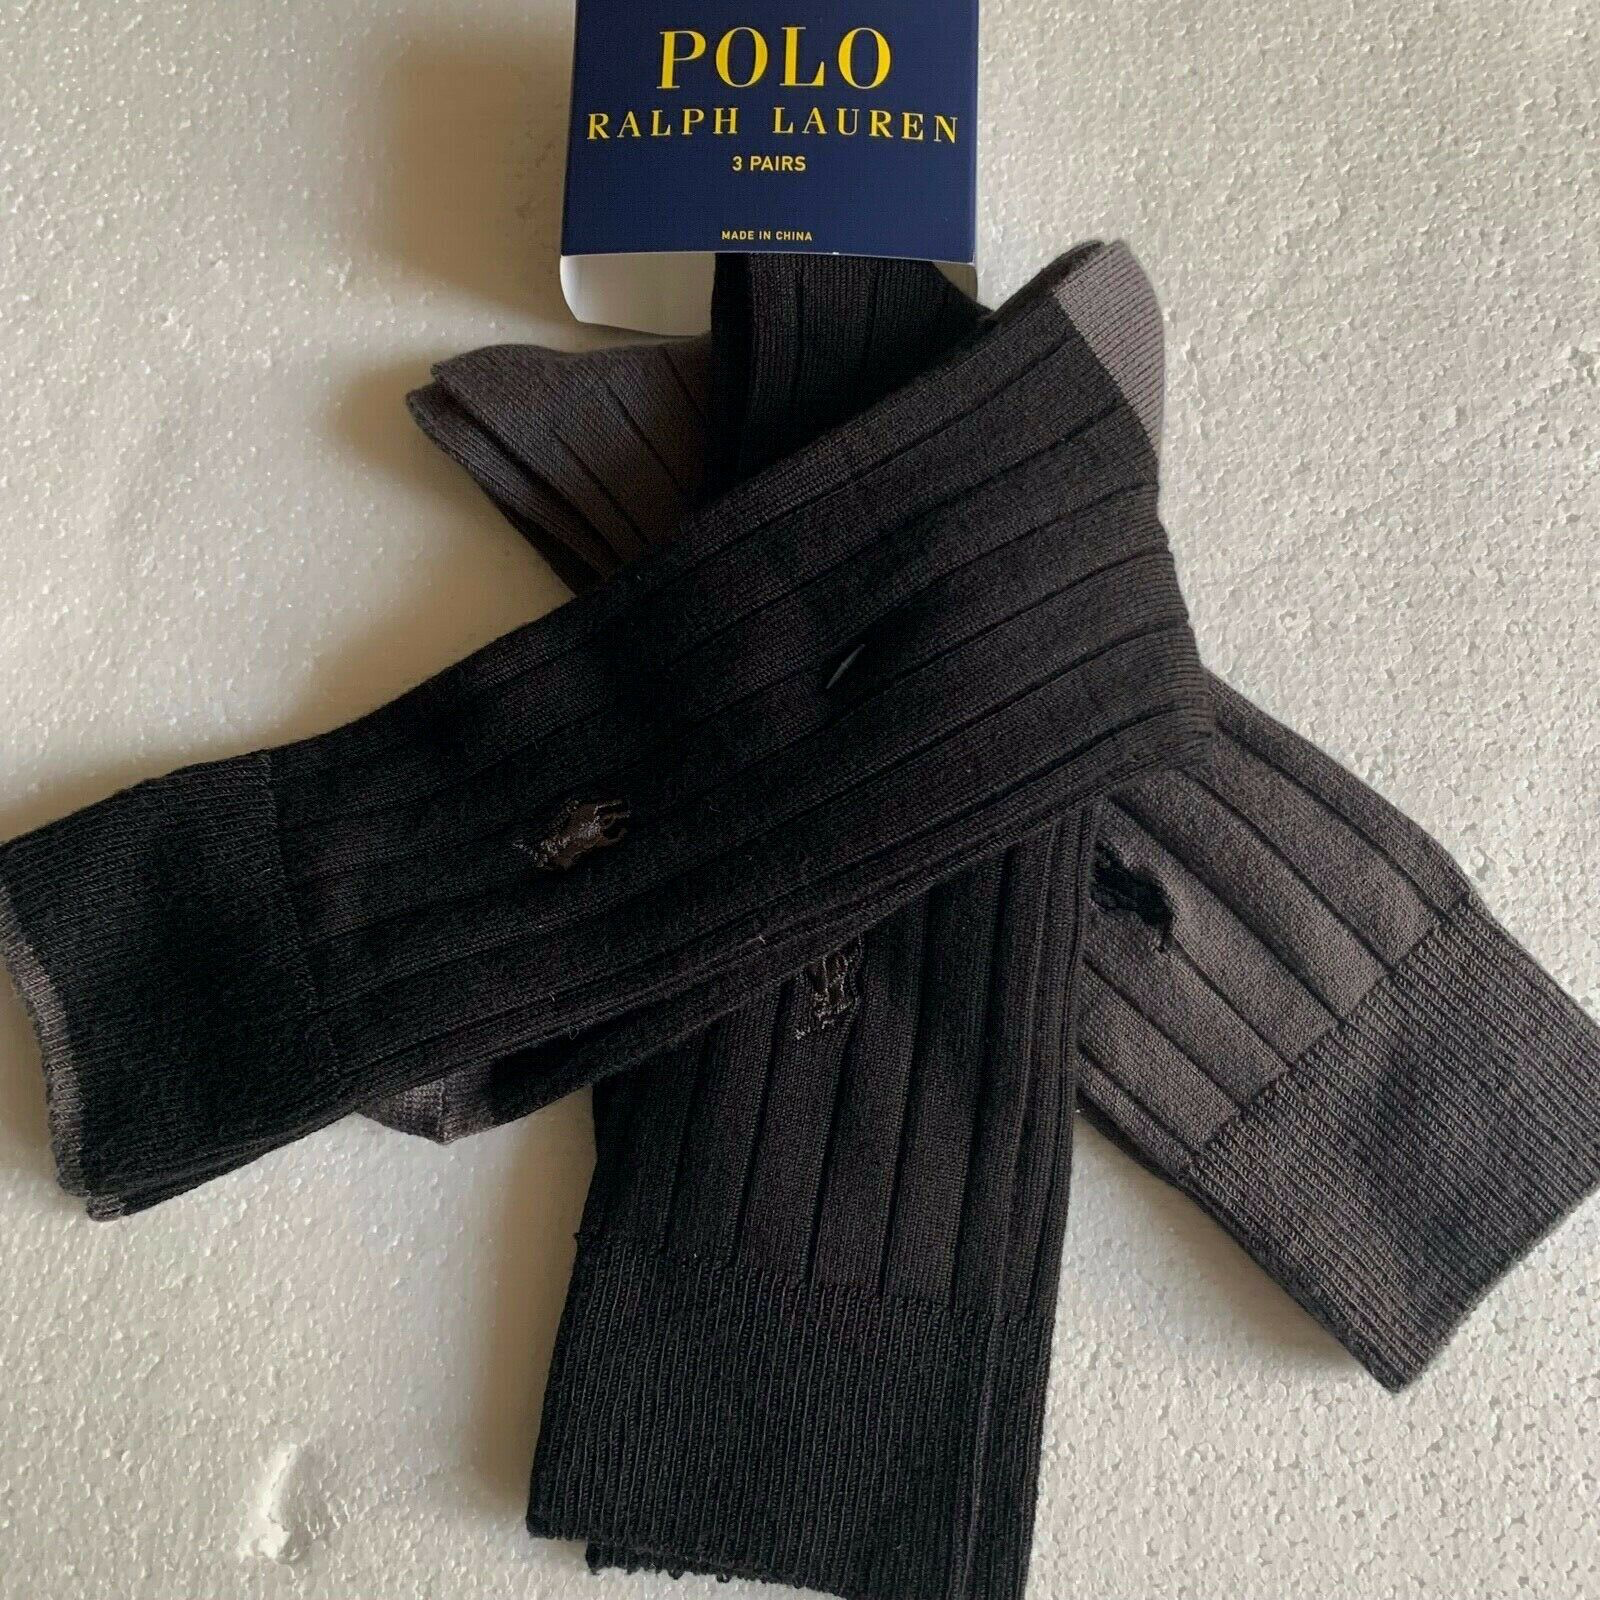 Primary image for Polo Ralph Lauren Dress Socks 10-13 shoes